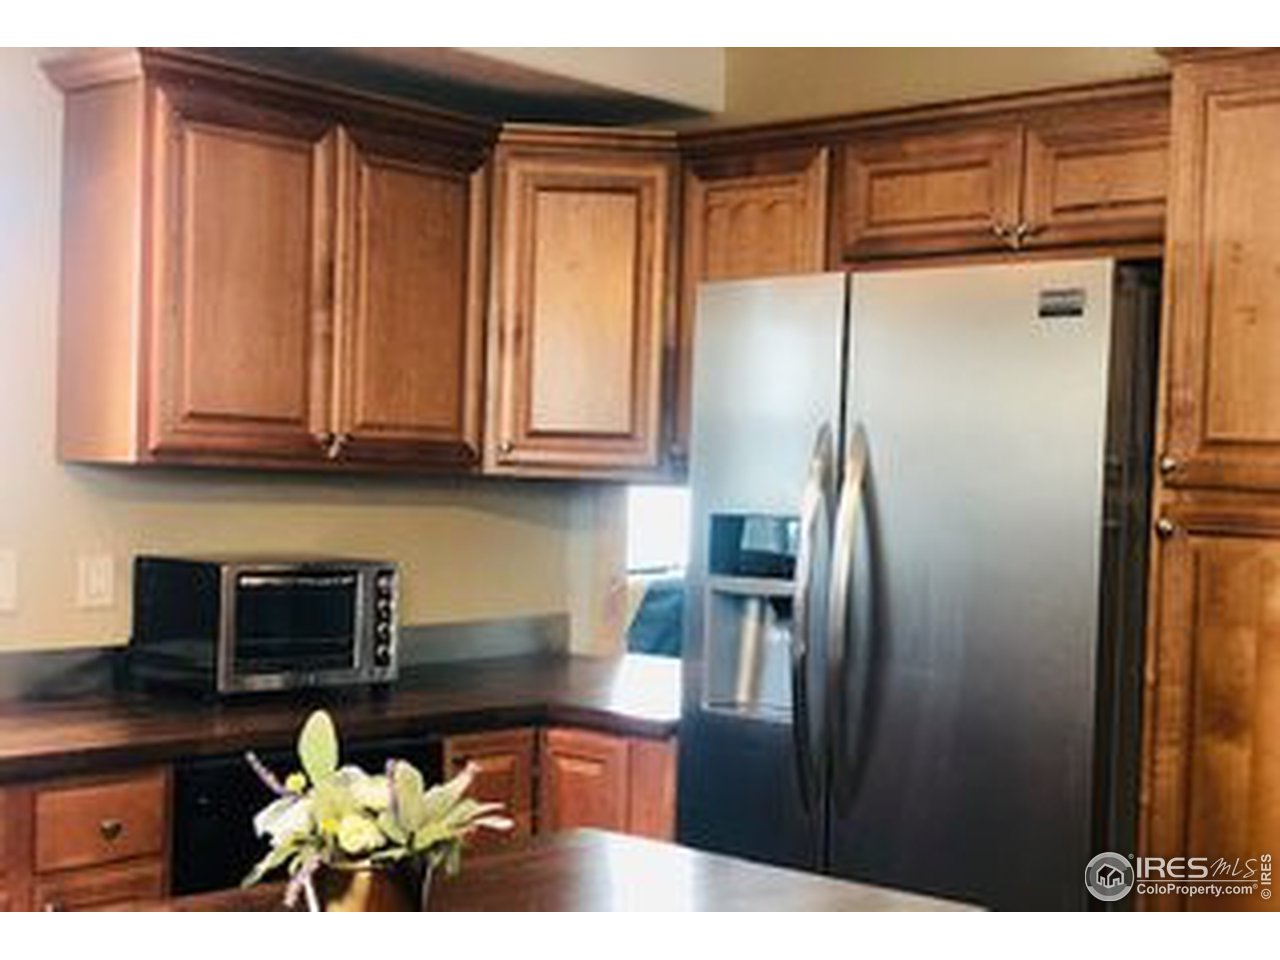 Kitchen to easily work in